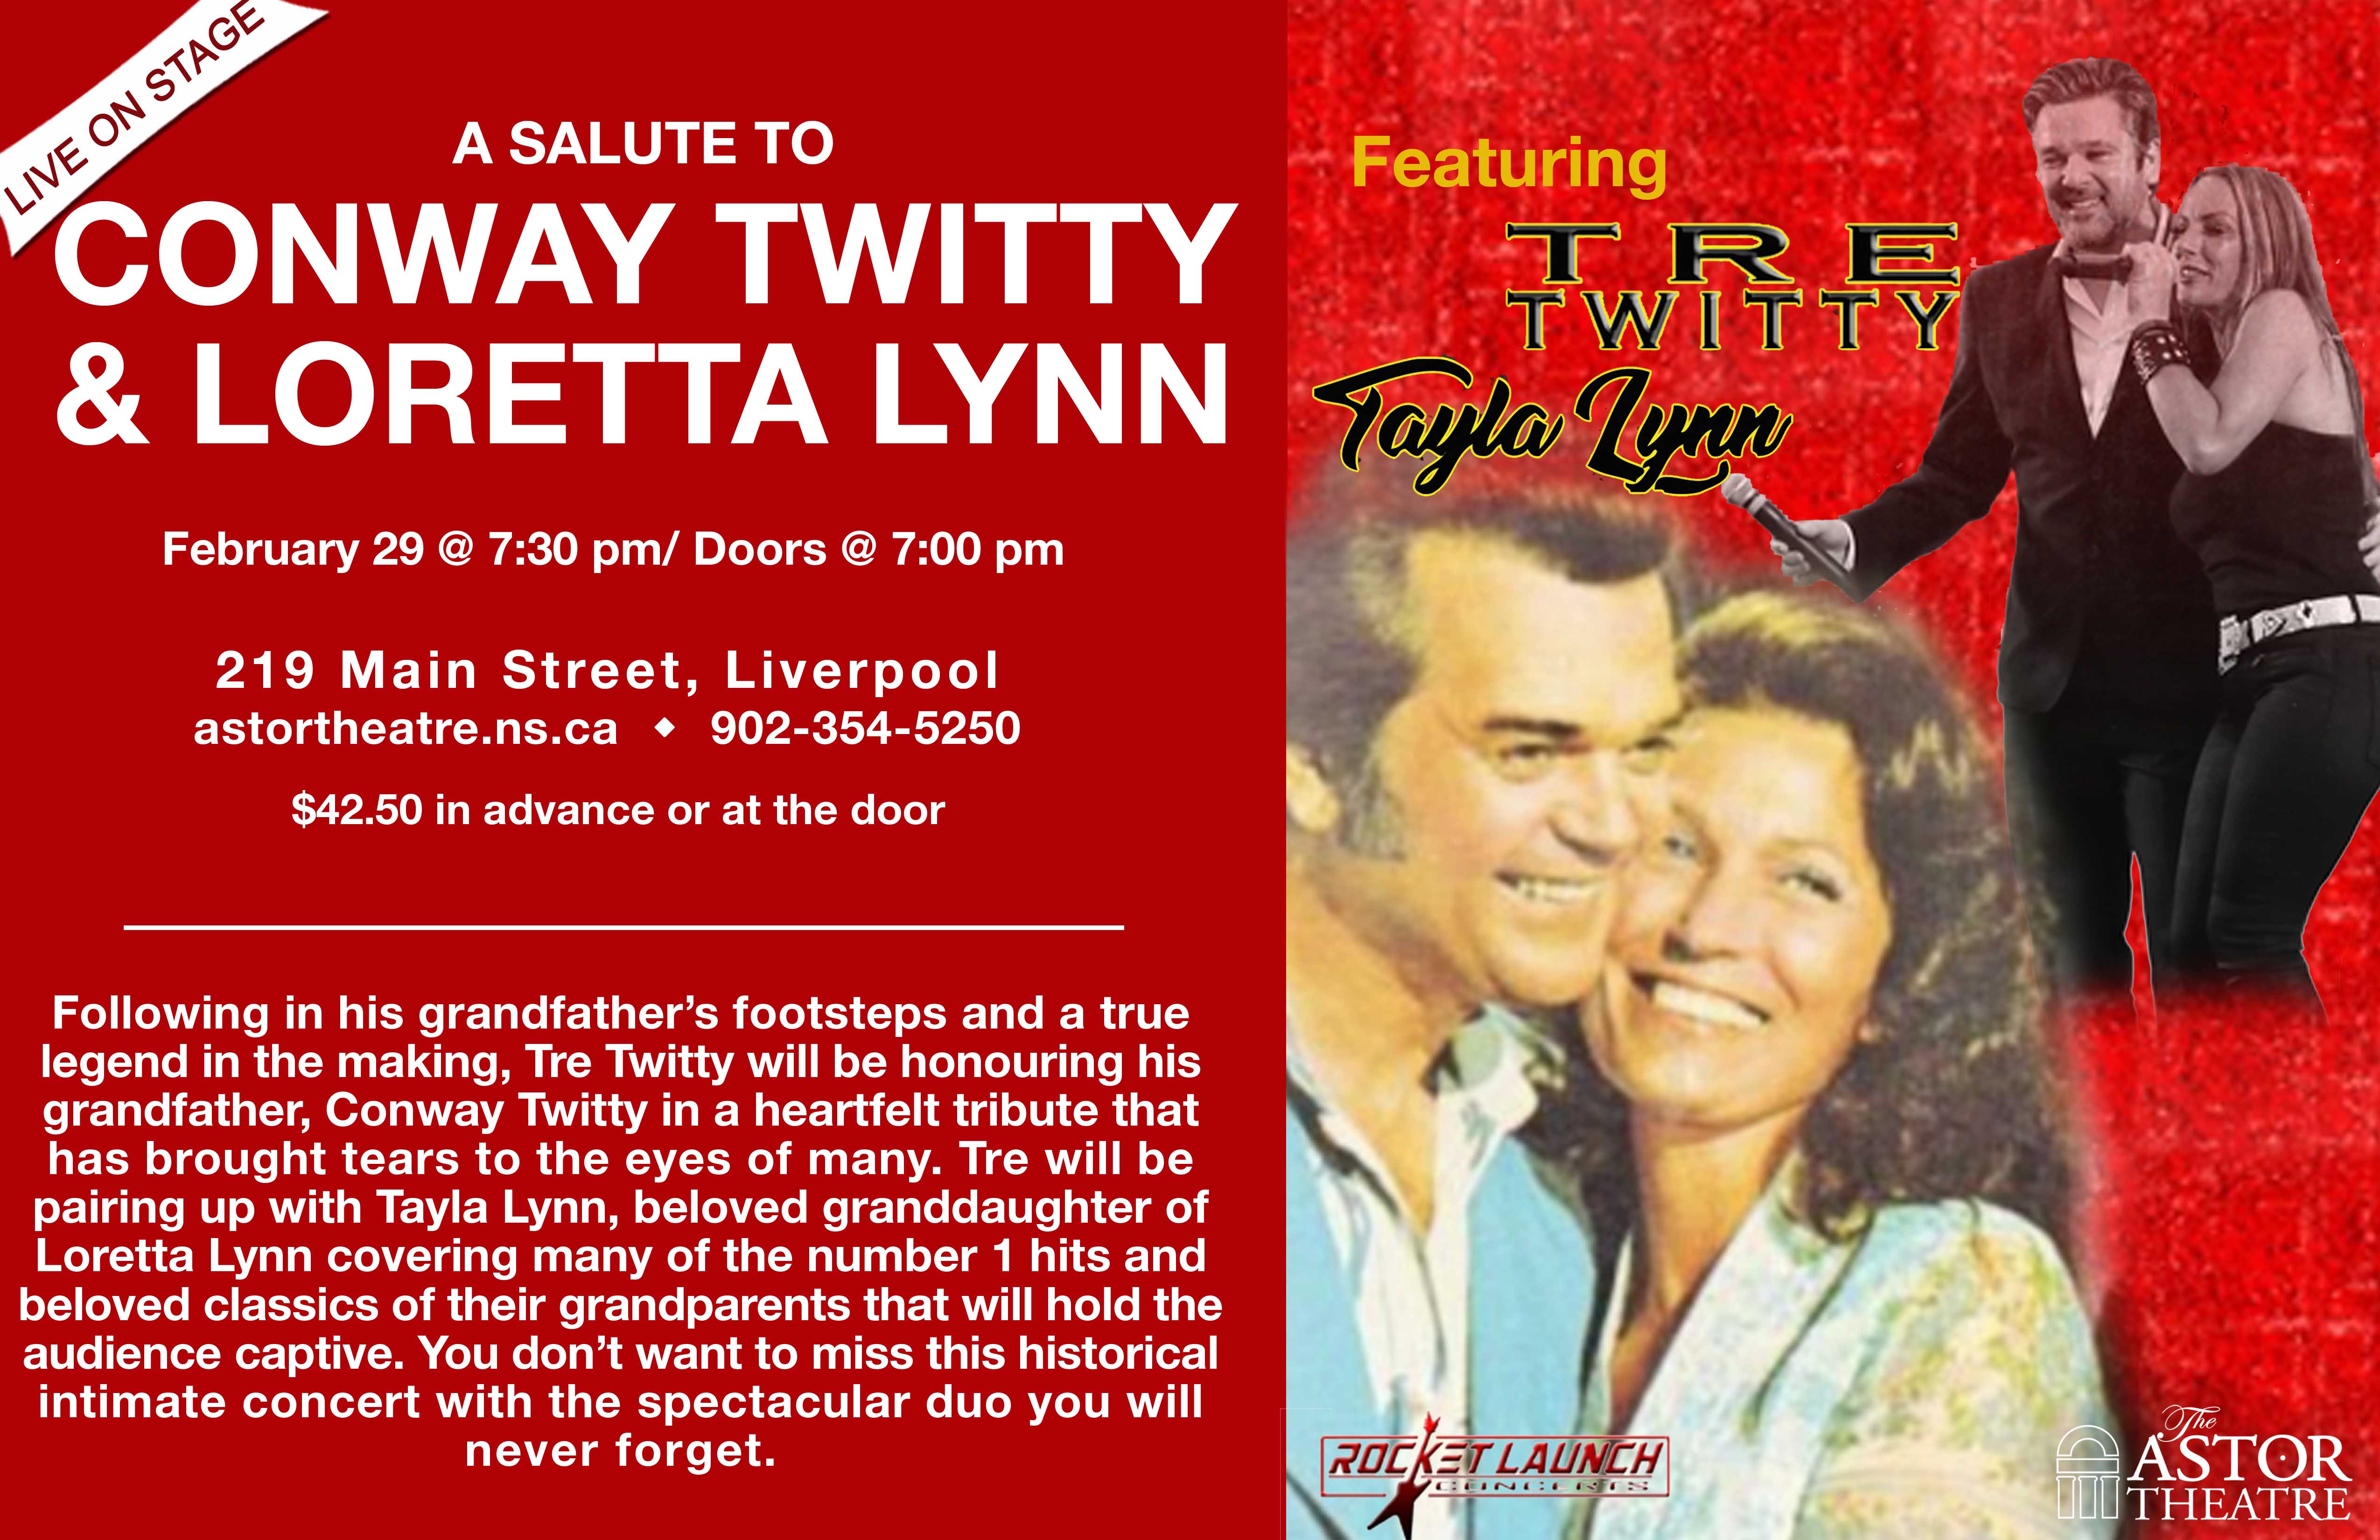 A Salute to Conway Twitty & Loretta Lynn @ Astor Theatre